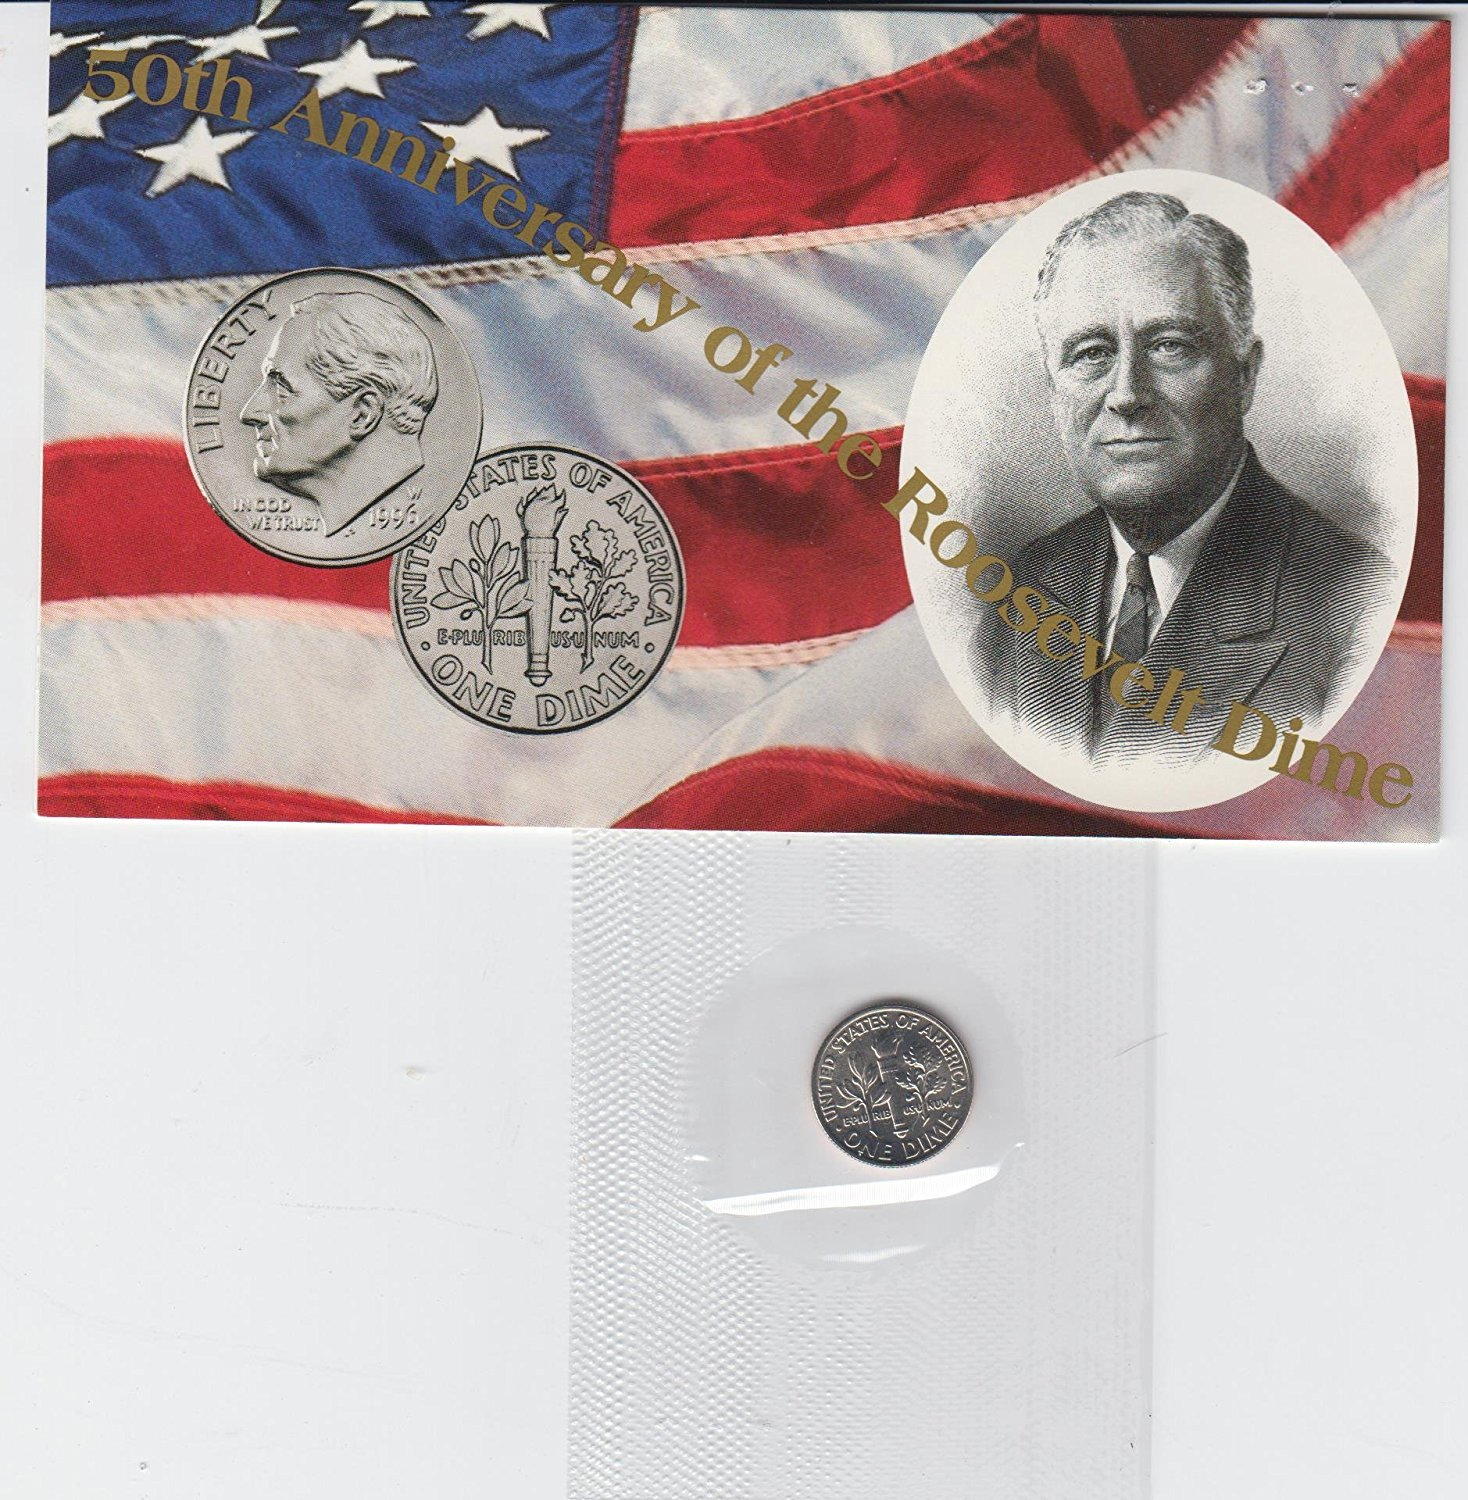 FDR 50th Anniversary Issue 1996 W dime Still in Mint set cello with COA